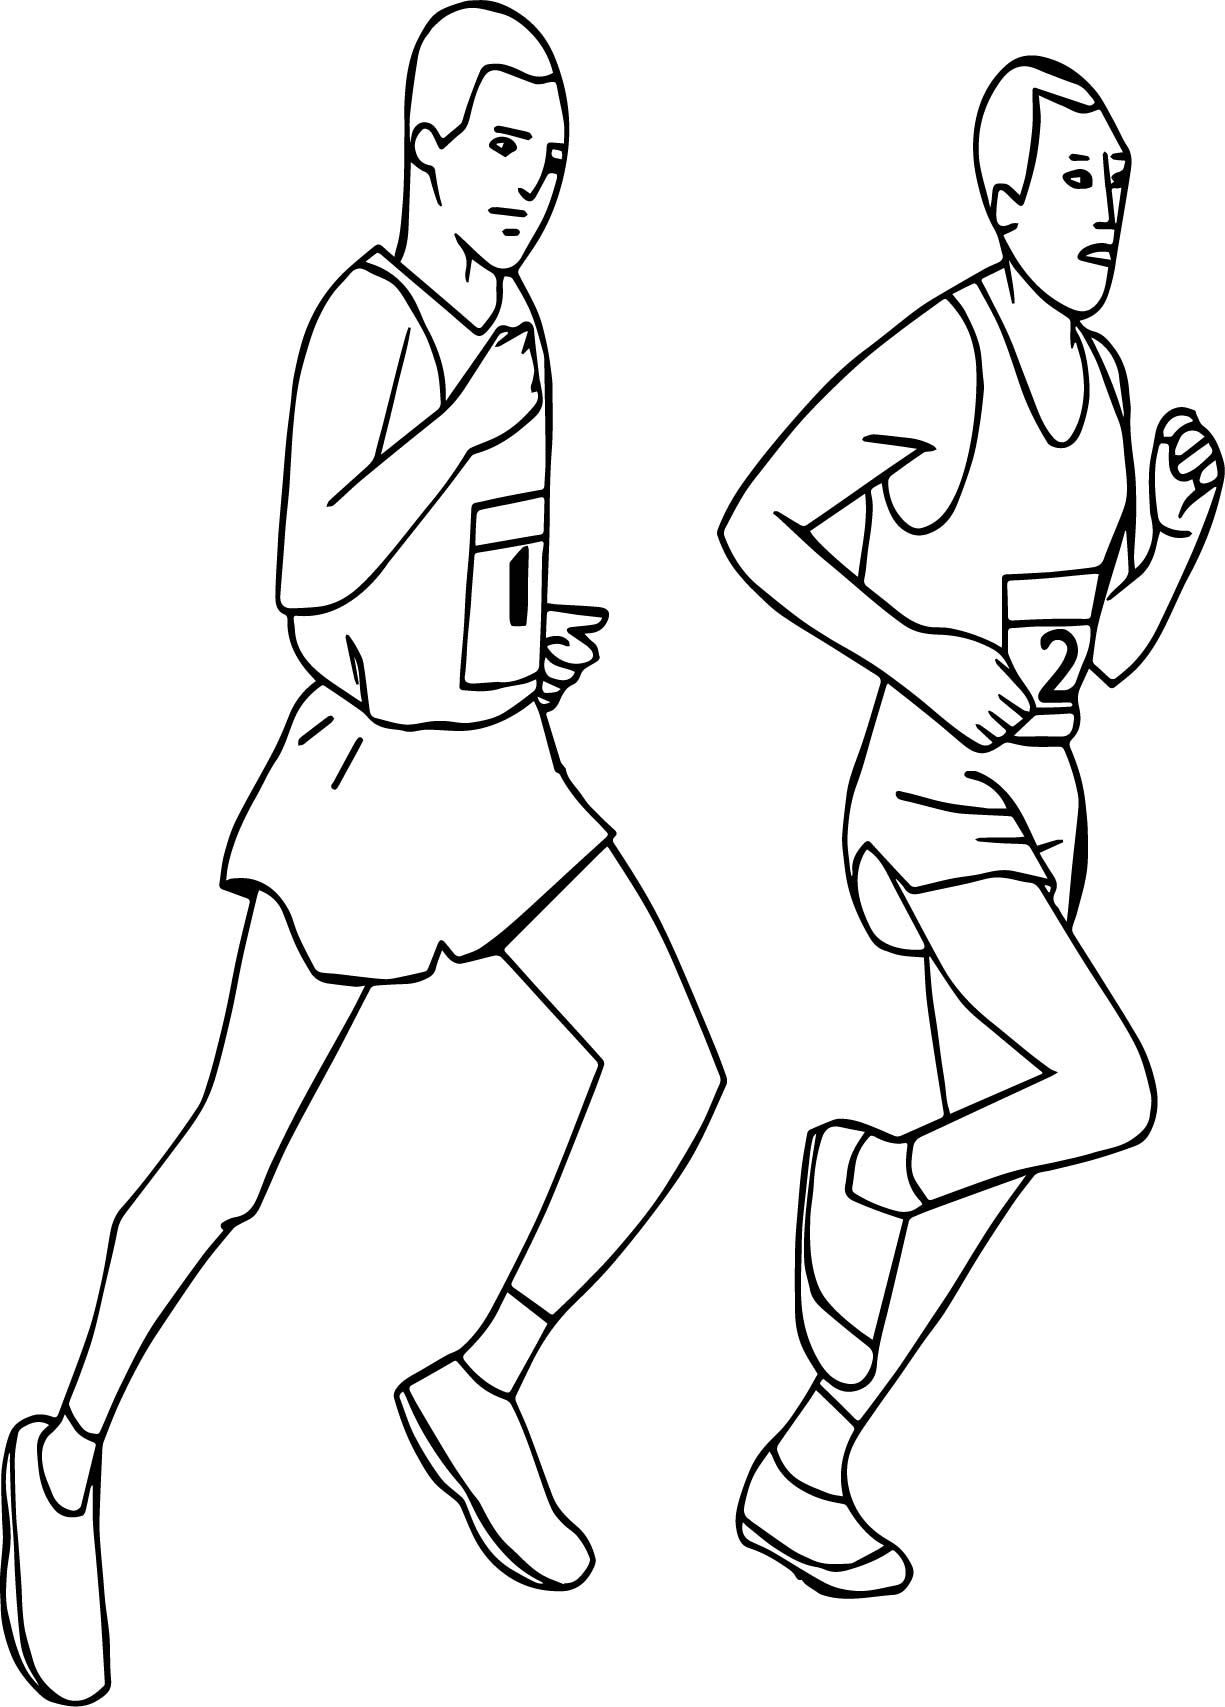 Awesome Running Sports Man Coloring Page Sports Coloring Pages Coloring Pages Football Coloring Pages